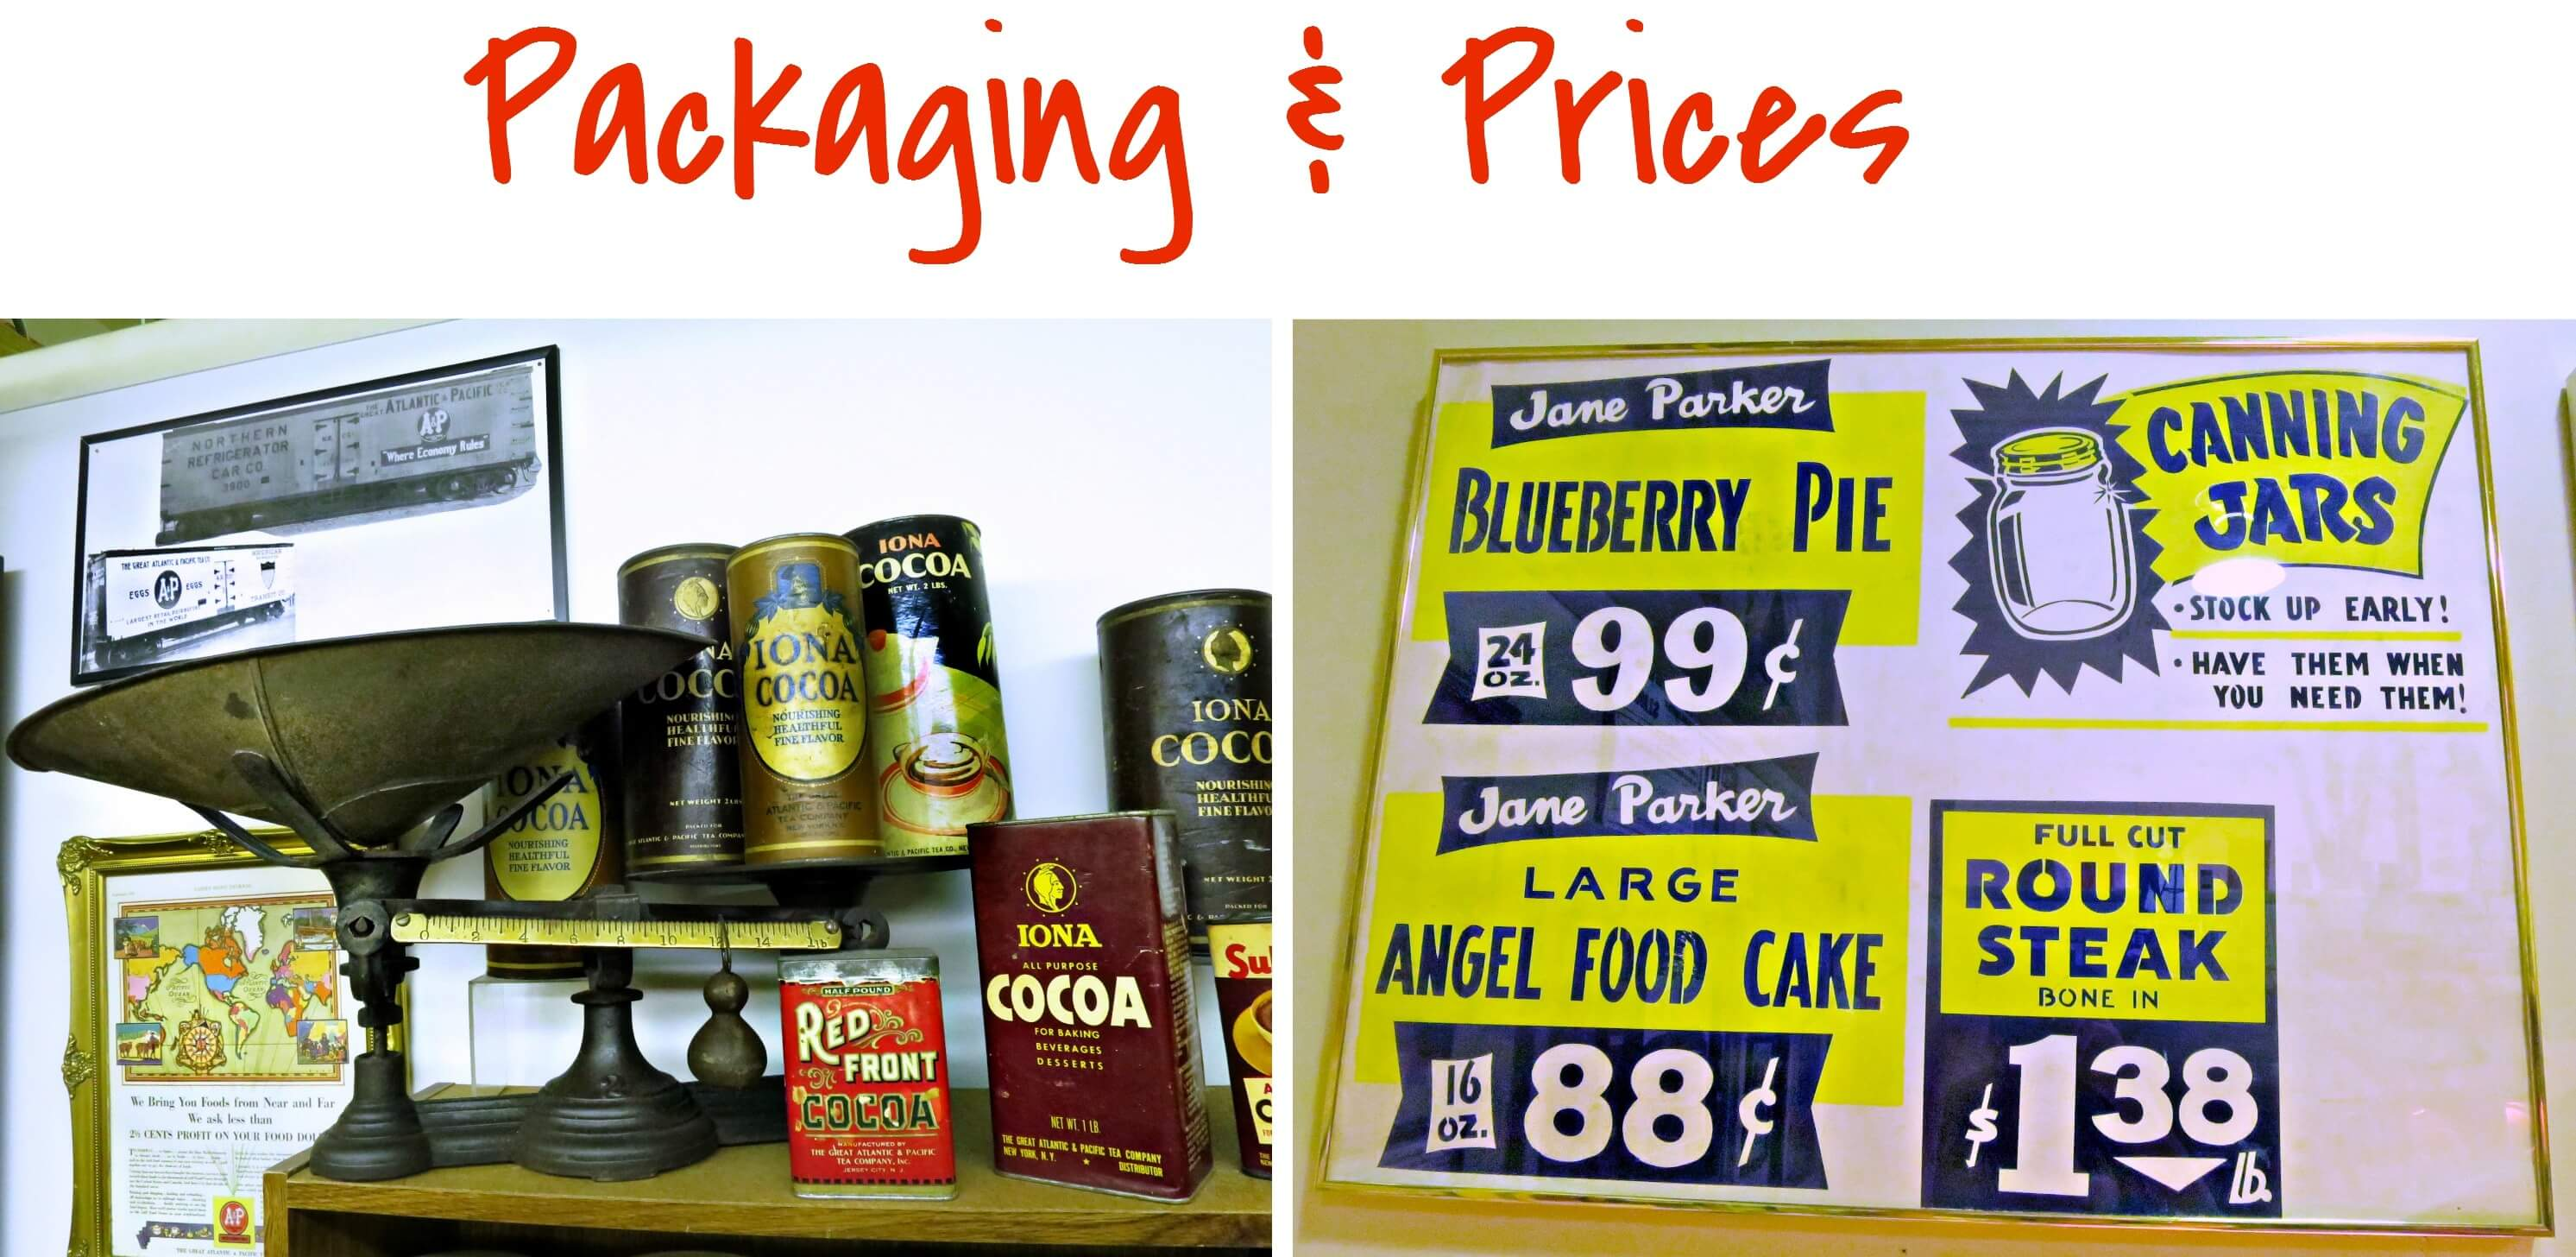 Eastfallslocal packaging and prices collage